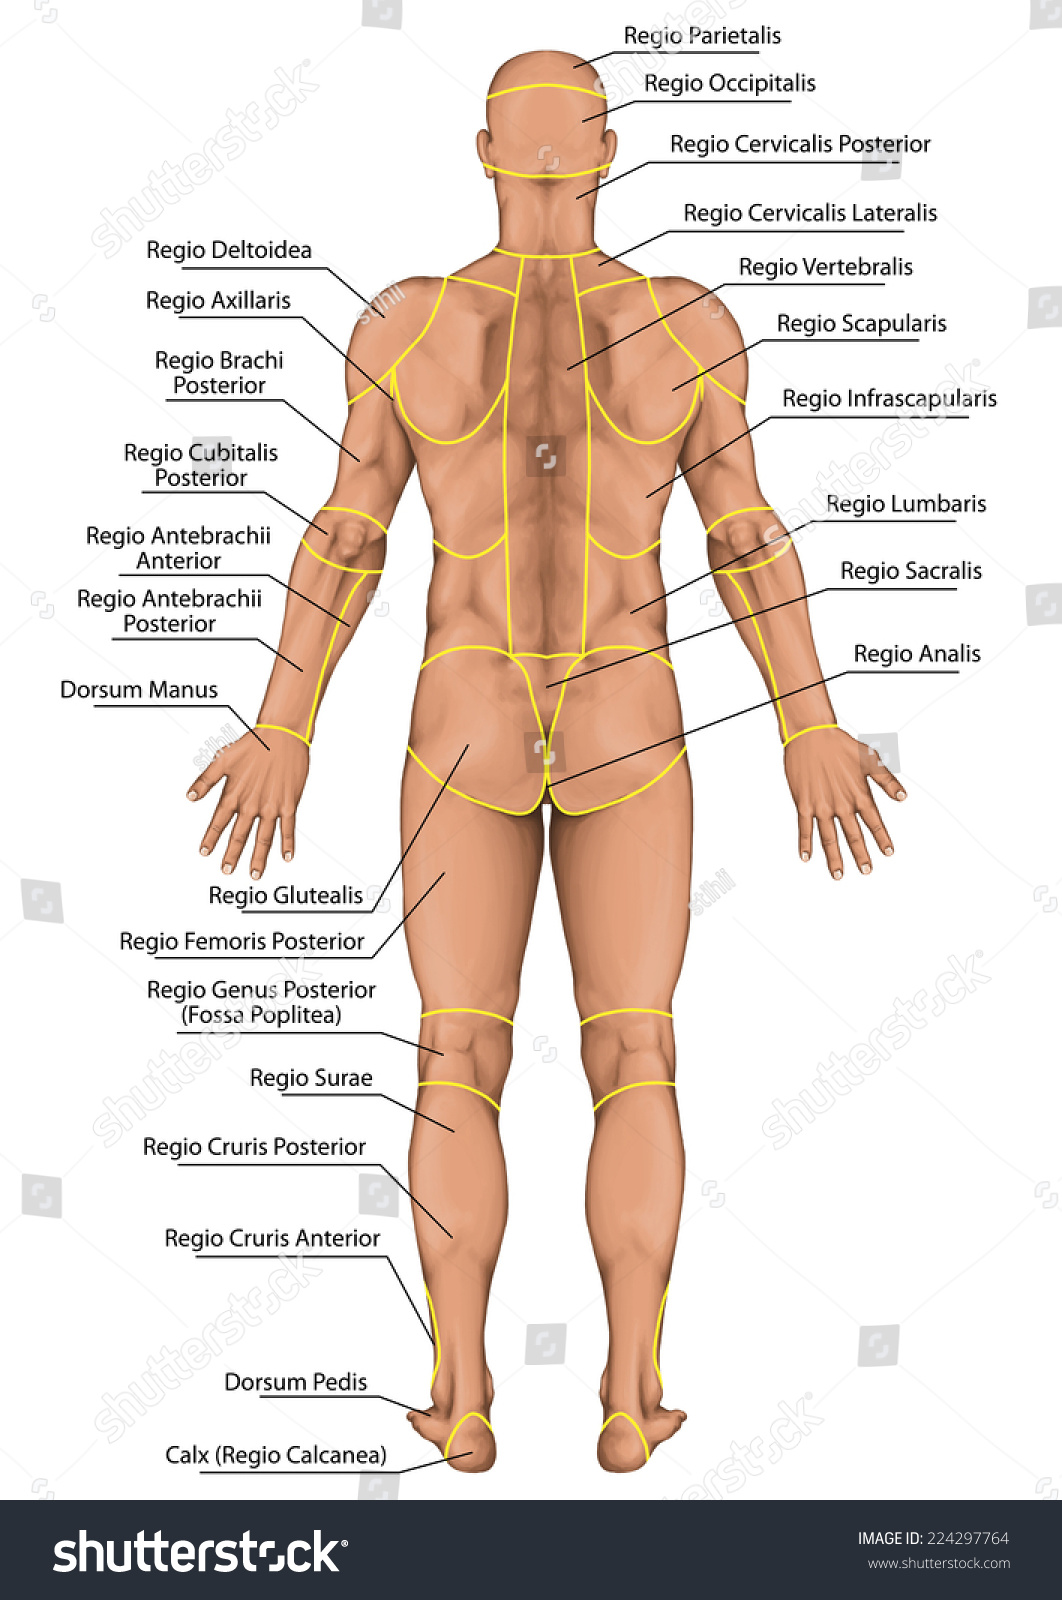 Royalty Free Anatomical Board Region Of A Human 224297764 Stock